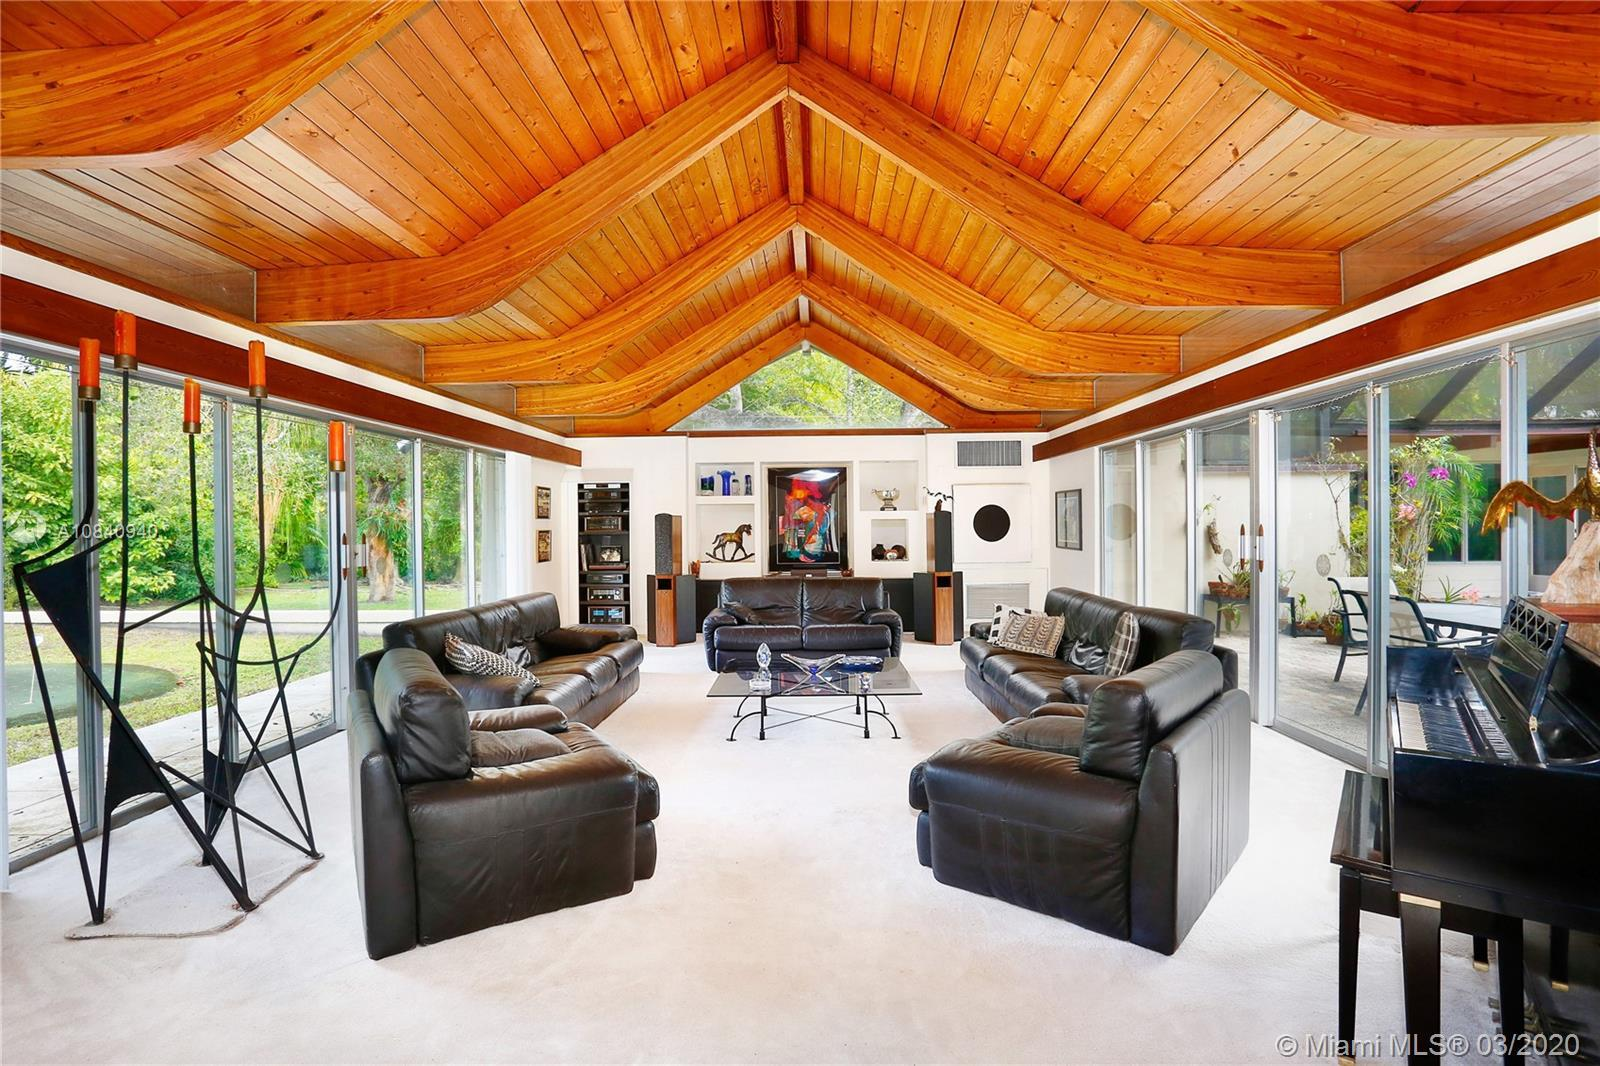 $220 a square foot! If you are looking for something special, this mid-century home will inspire you